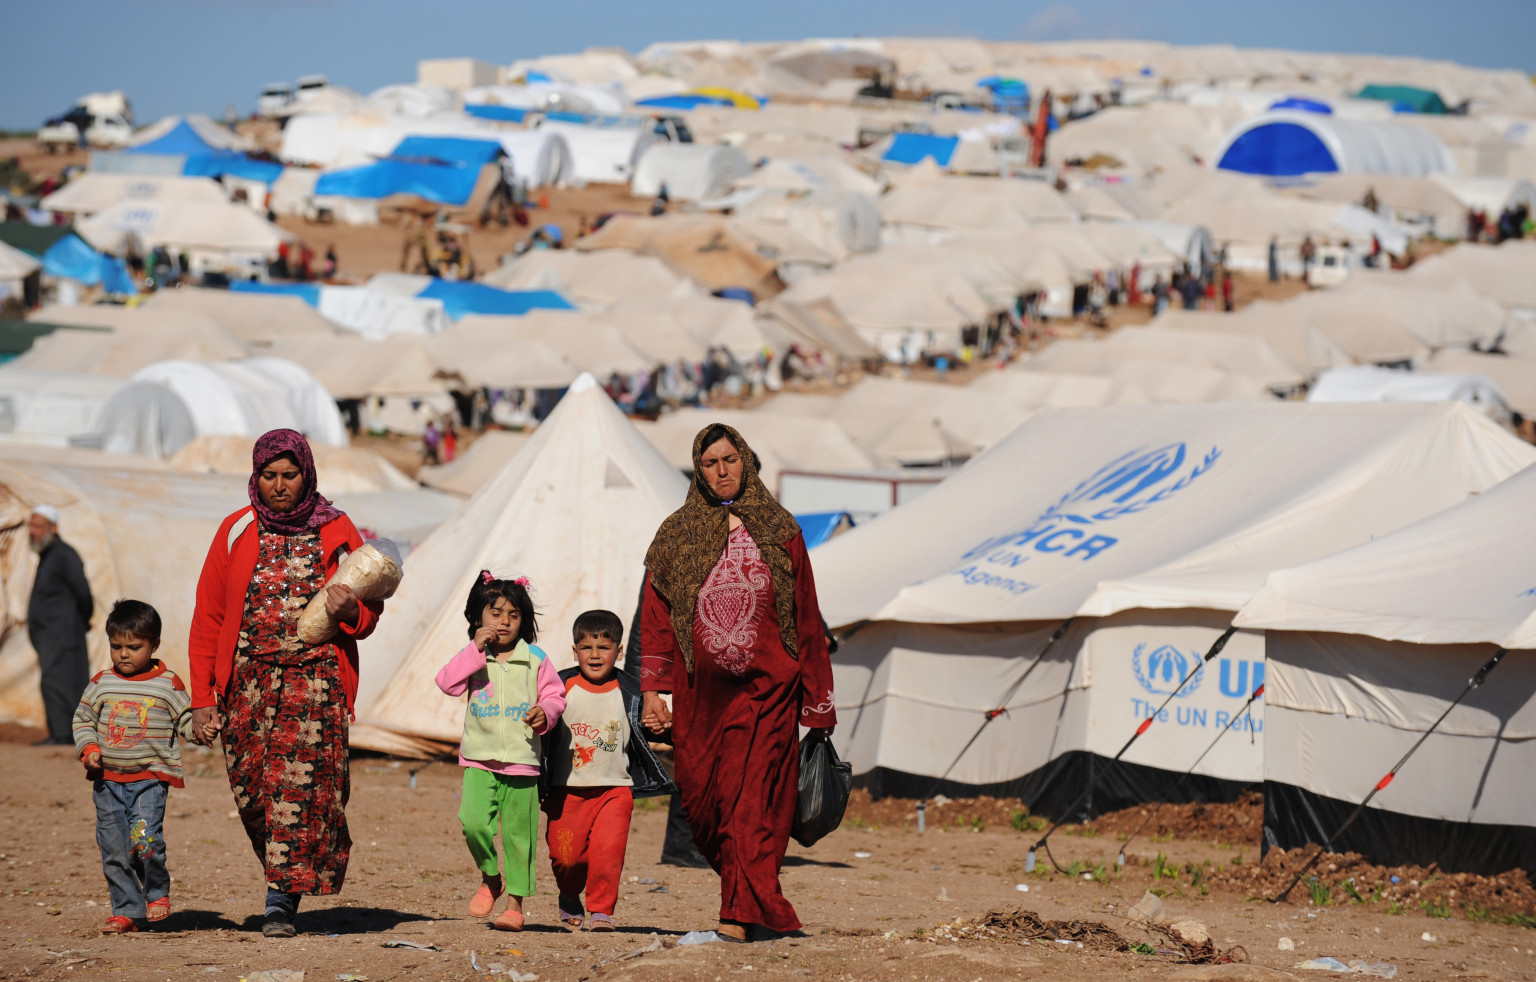 Population in Syria Suffers from Sanctions Imposed by the West